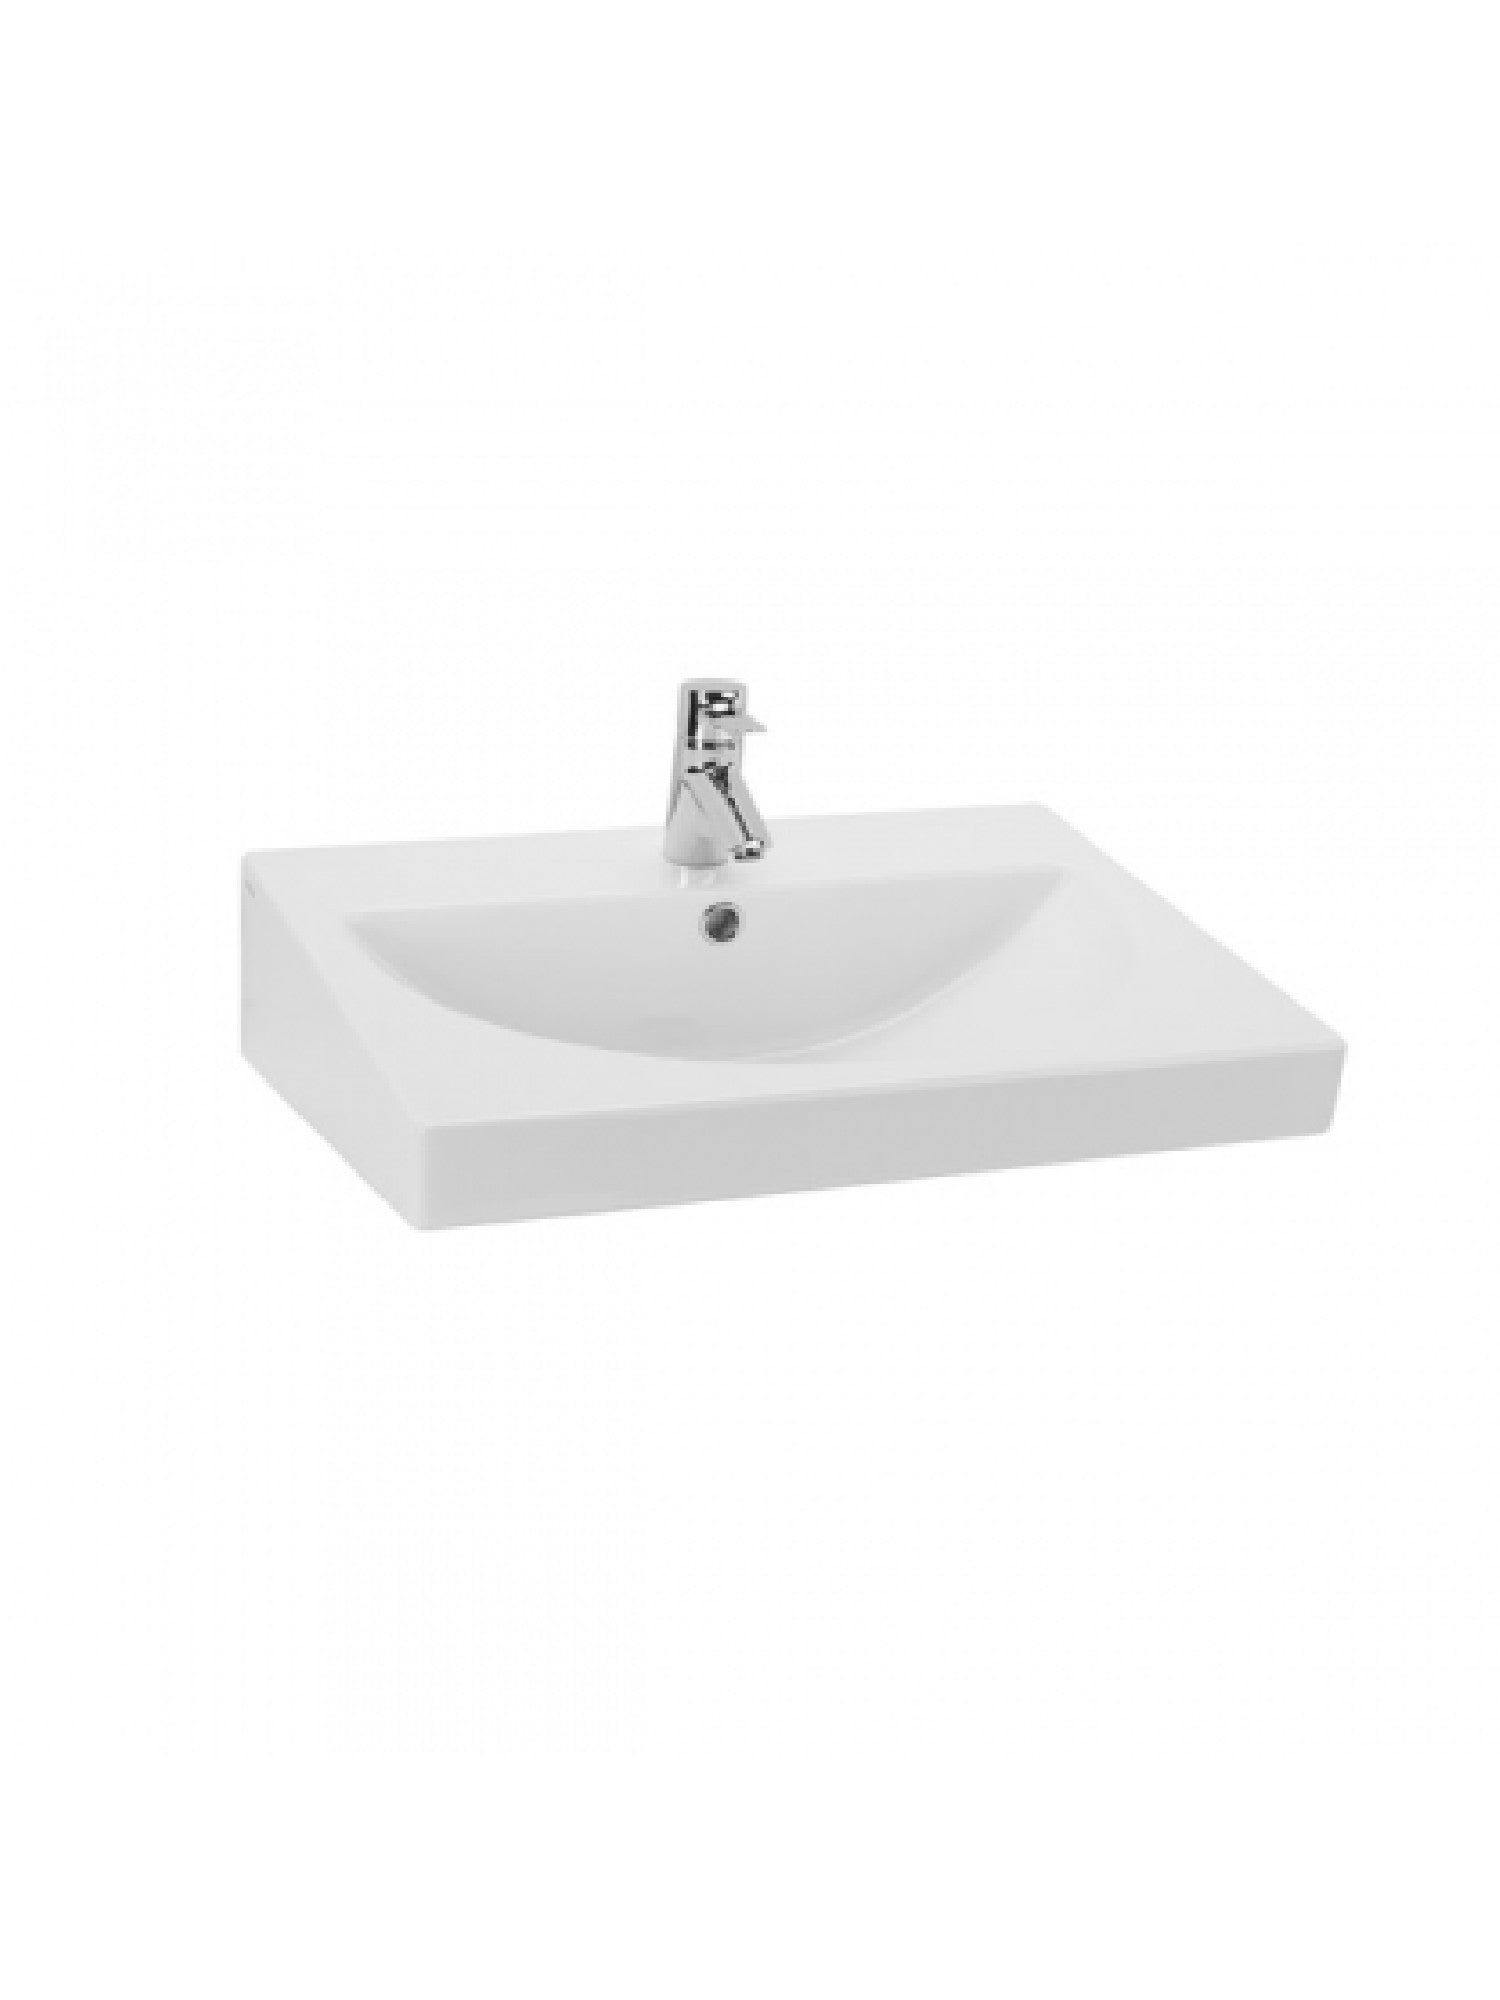 URB.Y 65 Wall-Mounted Basin  #140350